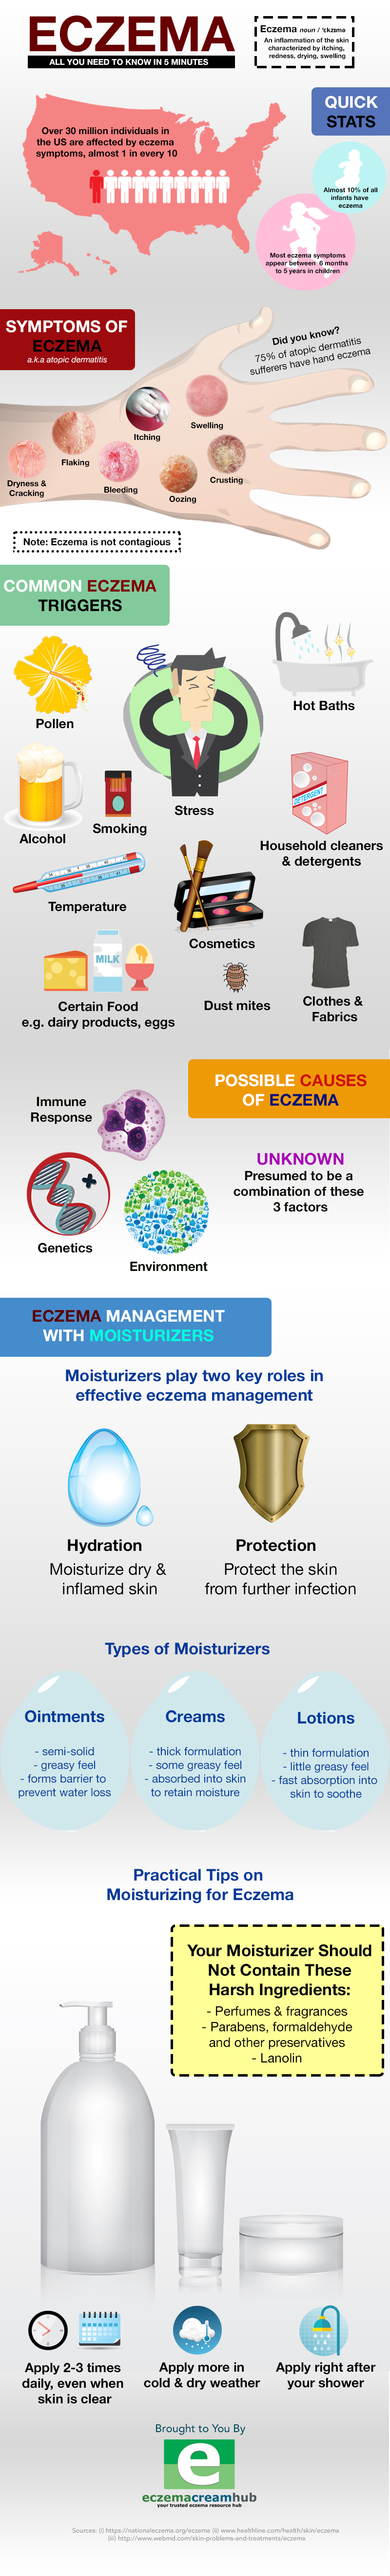 Eczema: All You Need to Know in 5 Minutes